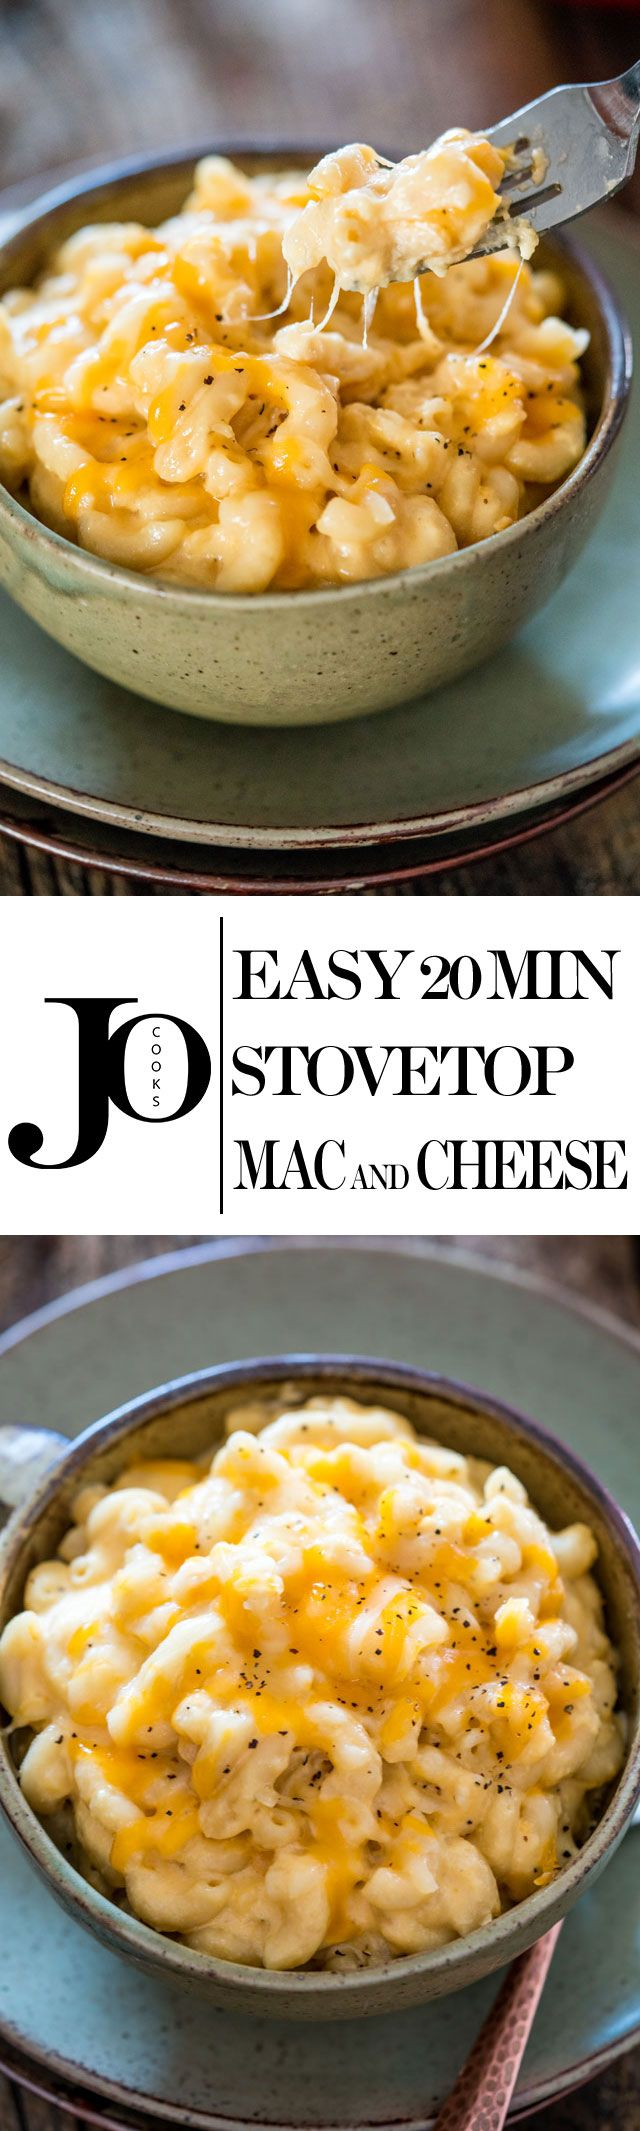 570 best quick and easy images on pinterest drink casserole easy stovetop mac and cheese that can be made from scratch and ready in 20 forumfinder Gallery